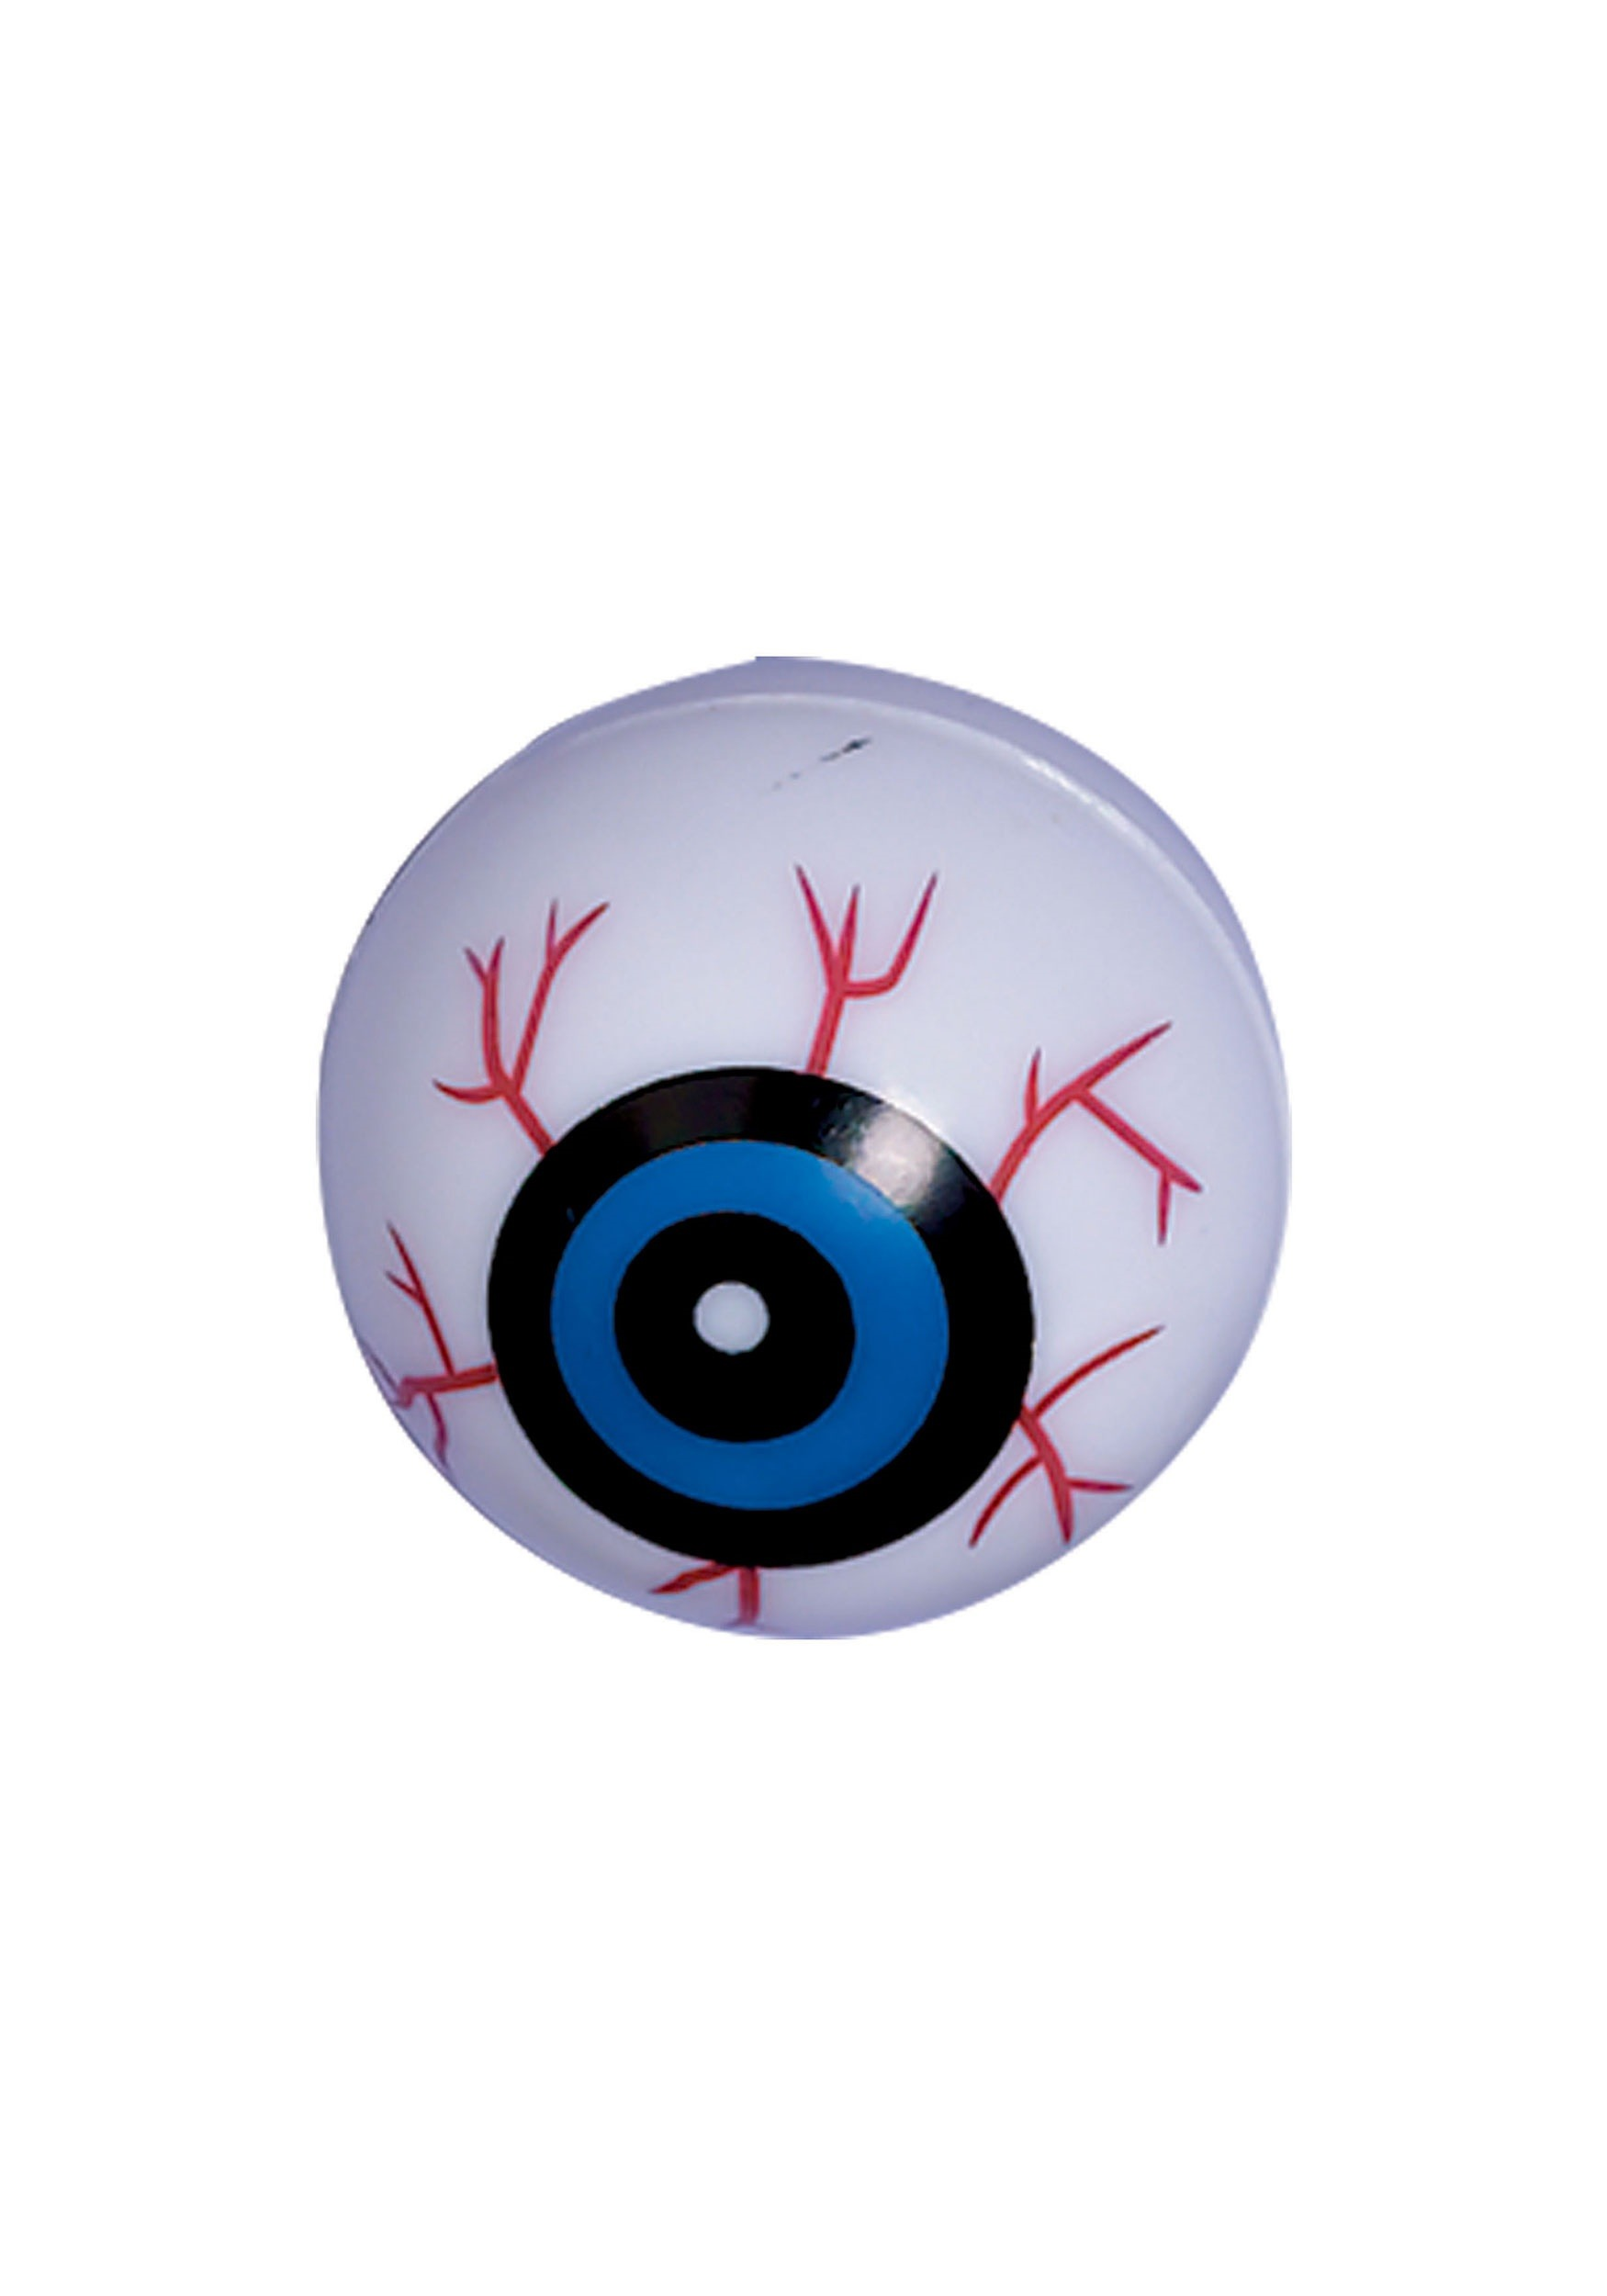 Bag_of_Plastic_Eyeballs_10_per_bag